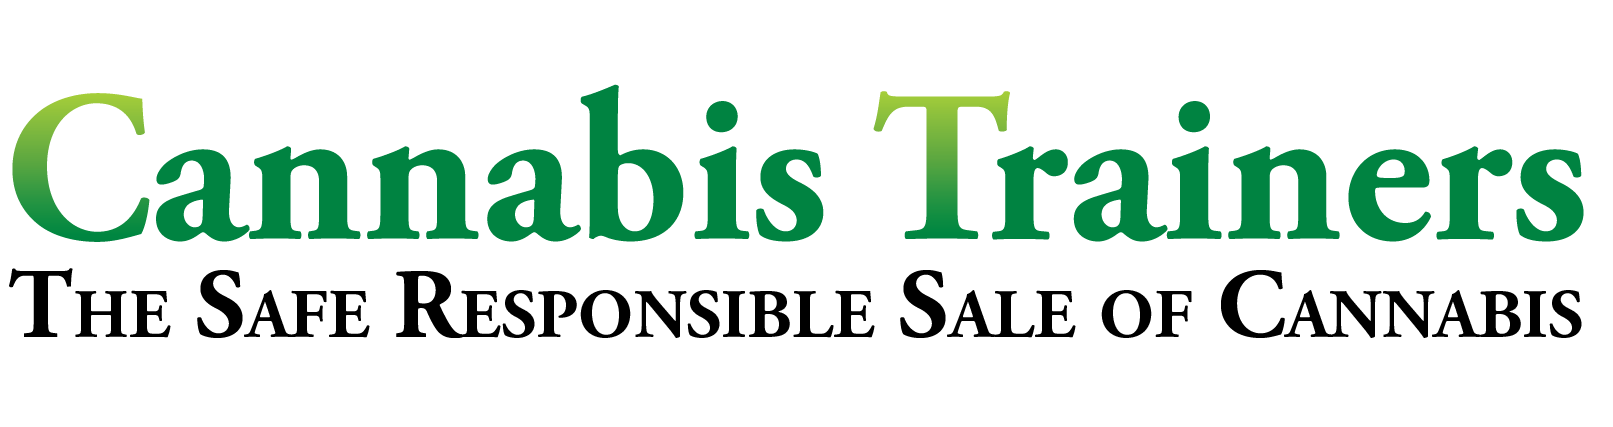 Cannabis Trainers Stationery.png